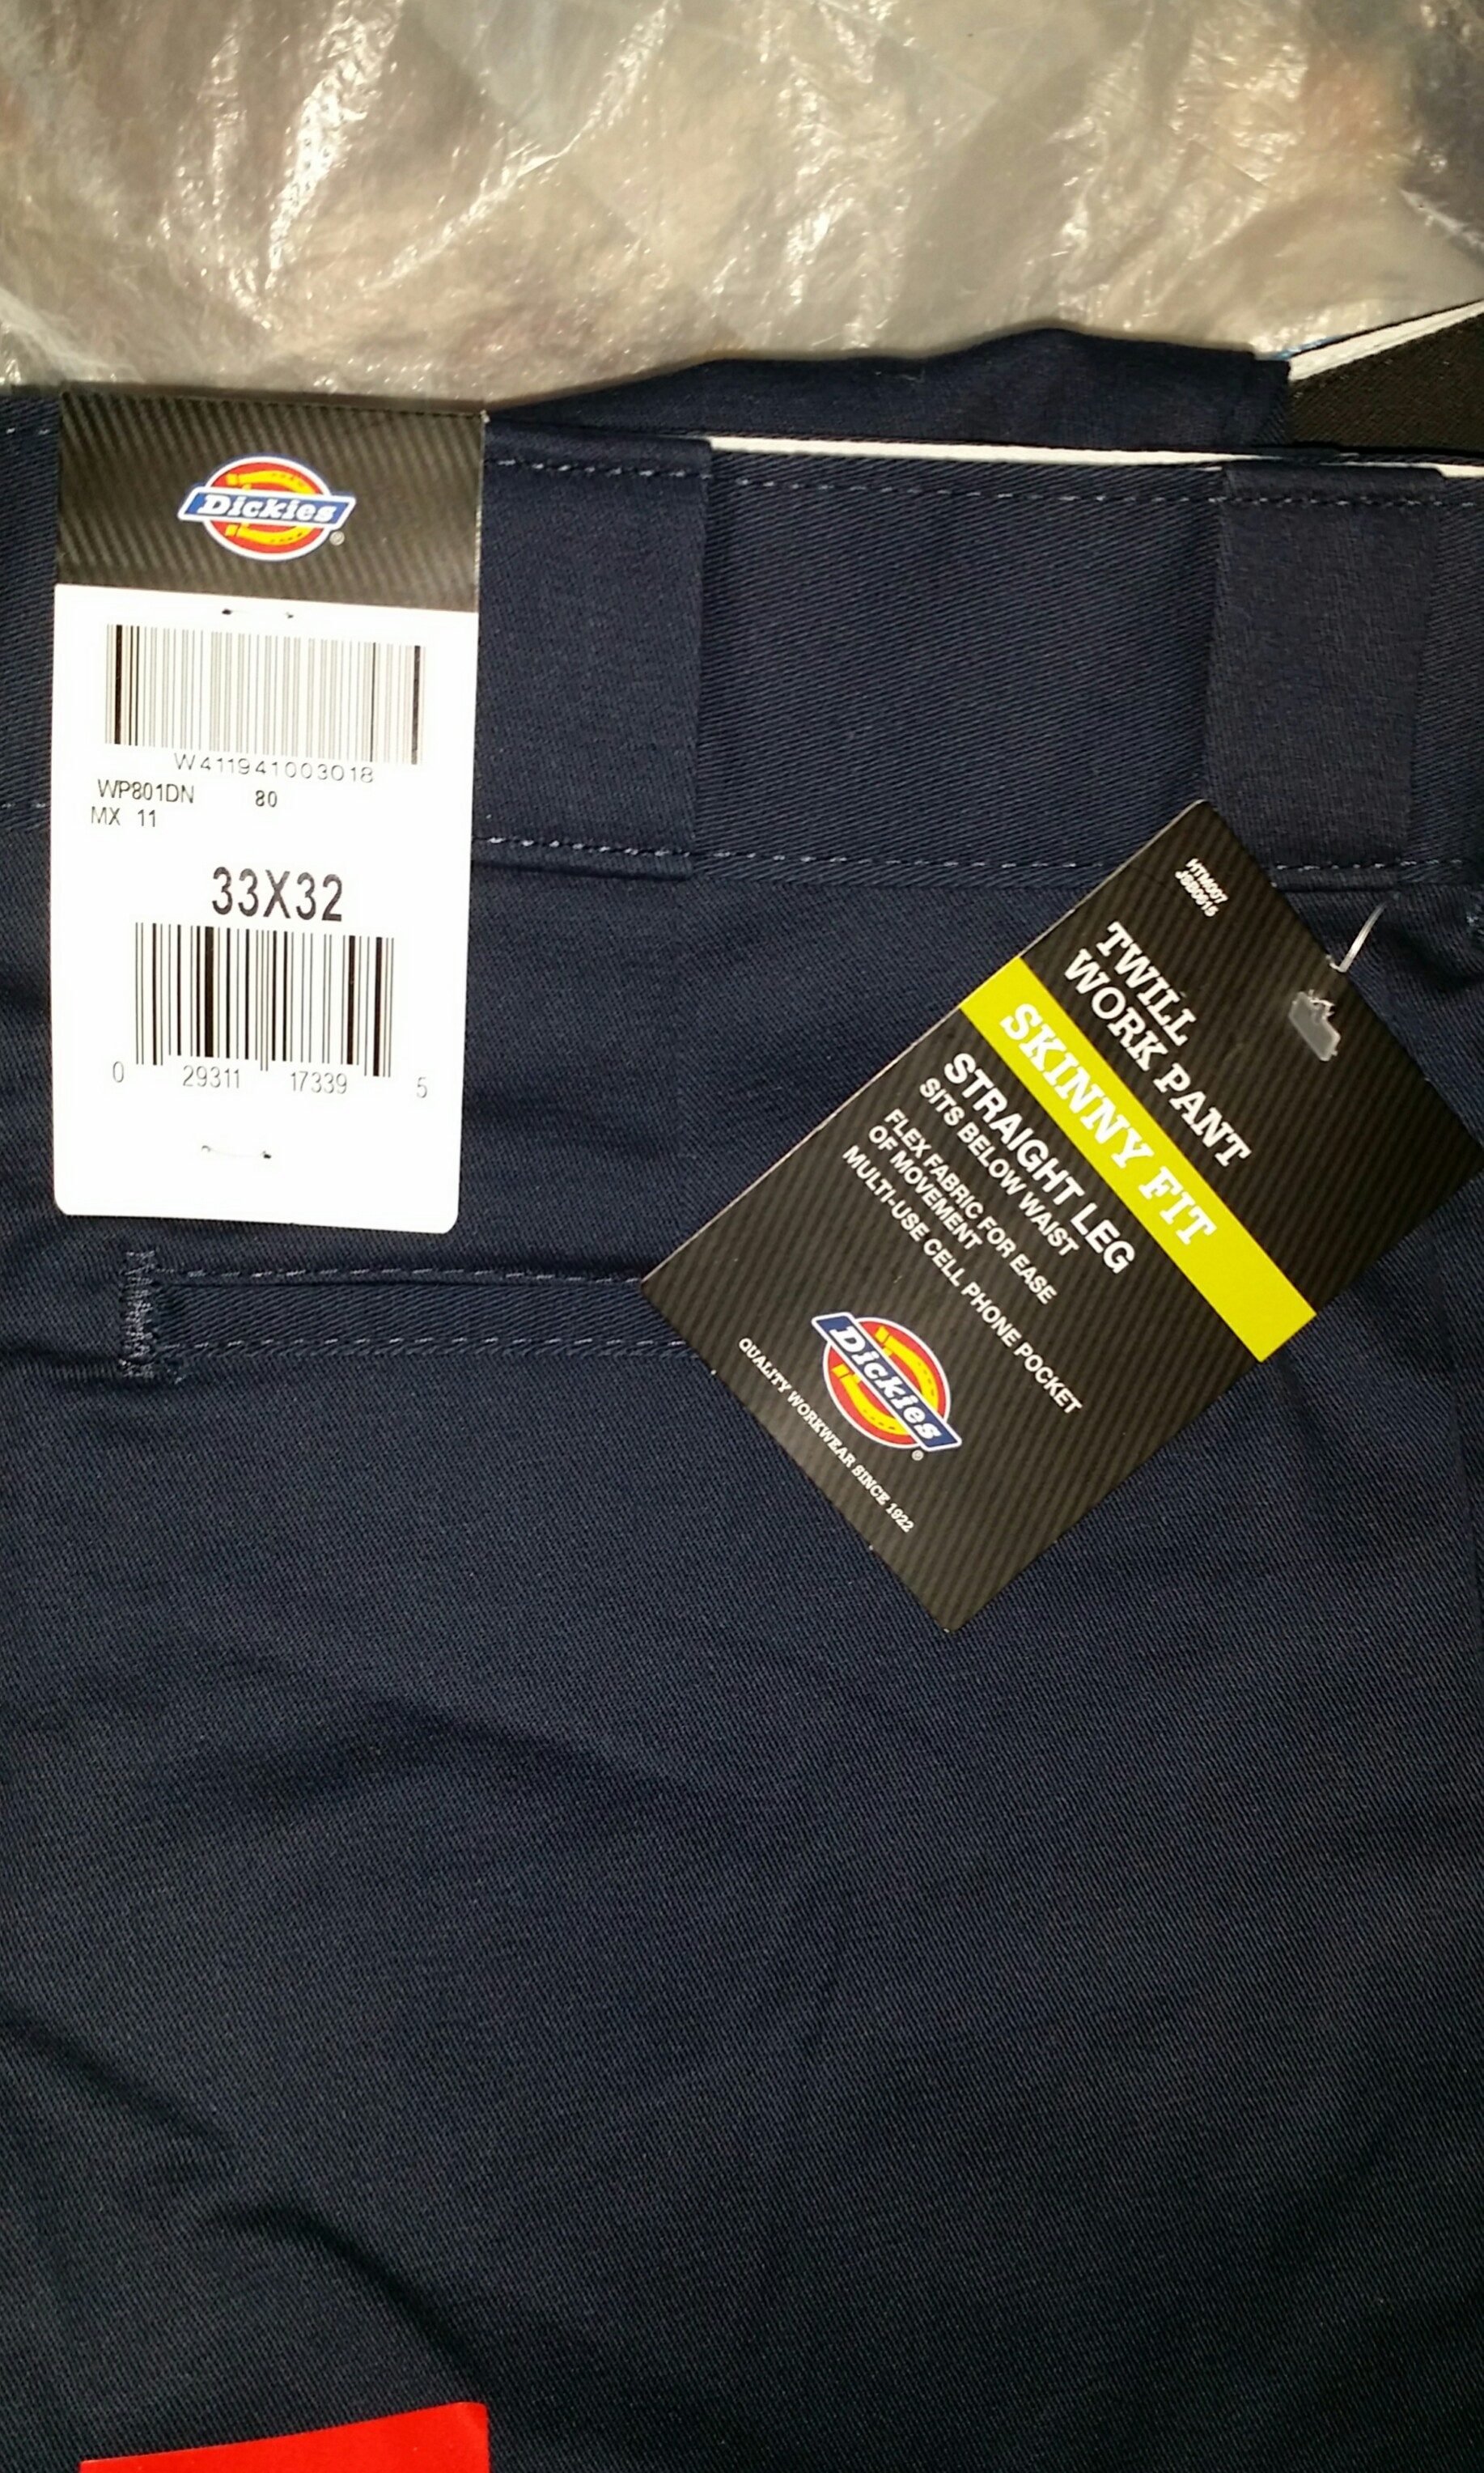 fbe6ad5e0e0 Size 33 Dickies 801 Skinny Fit Multi Pocket Work pants navy